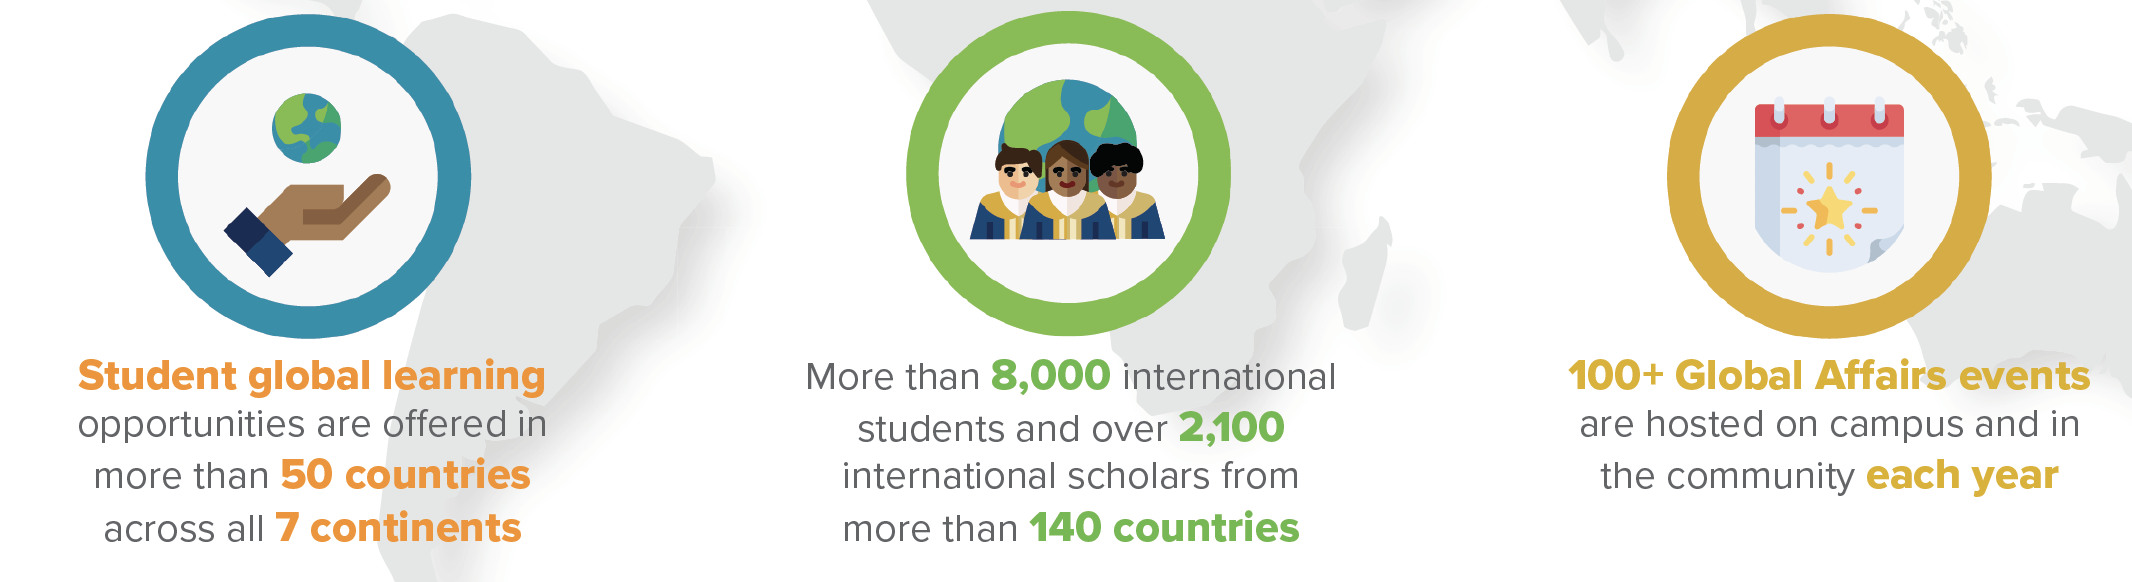 graphic: global learning opportunities across 50 countries and all seven continents, more than 8,000 international students and more than 2,000 international scholars from more than 140 countries, more than 100 global affairs events each year on campus